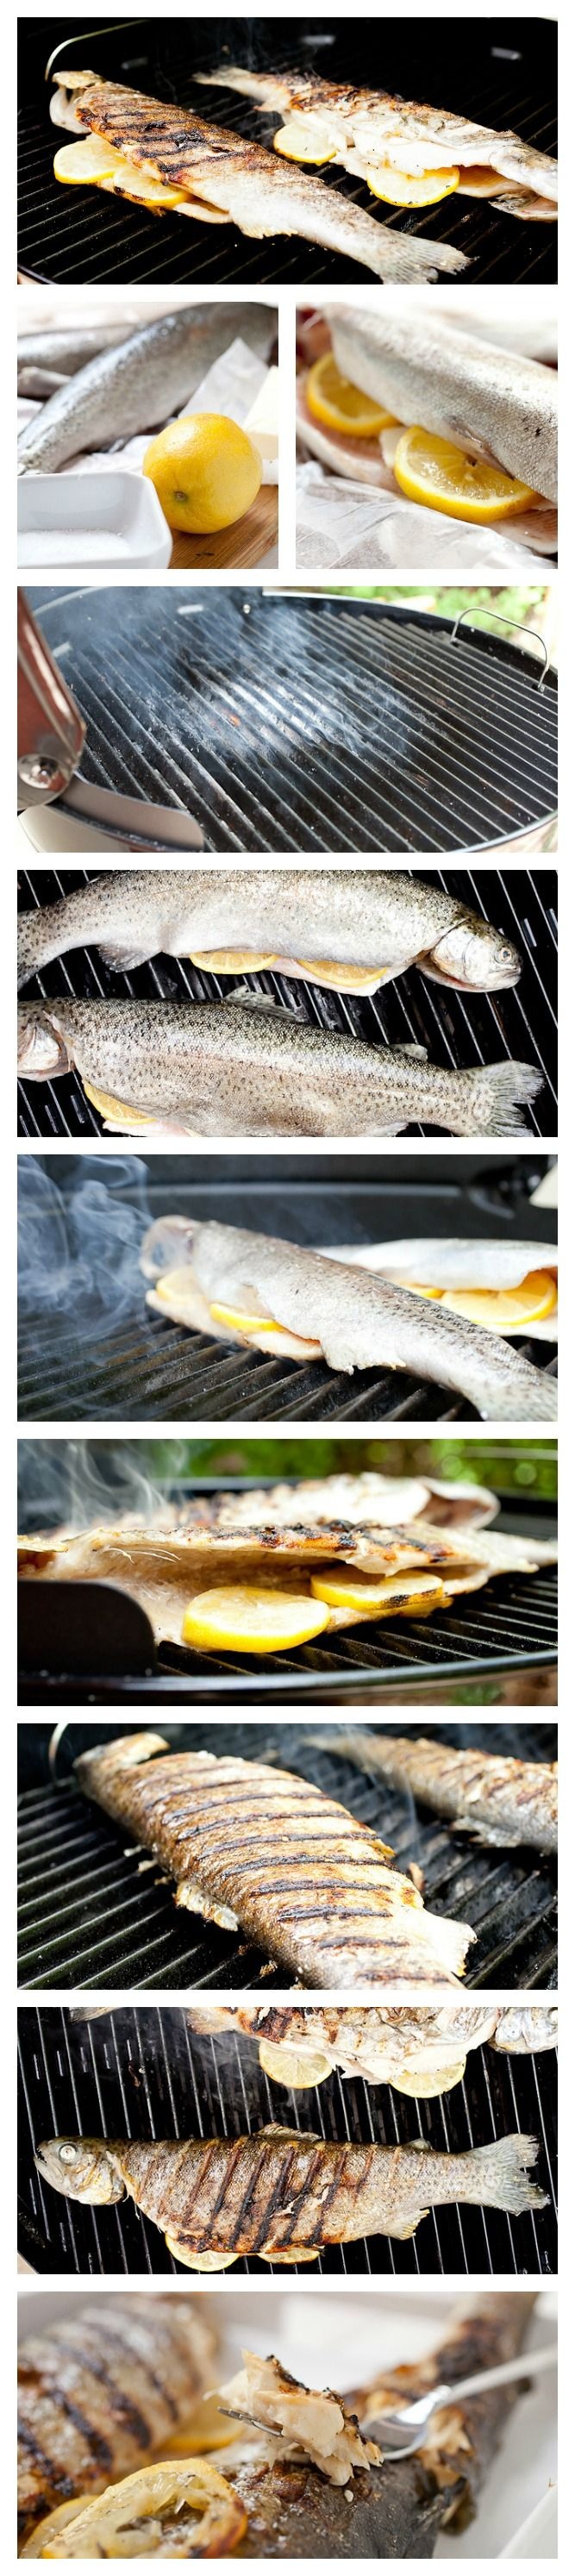 Want to grill a whole fish? We show you how easy it is!